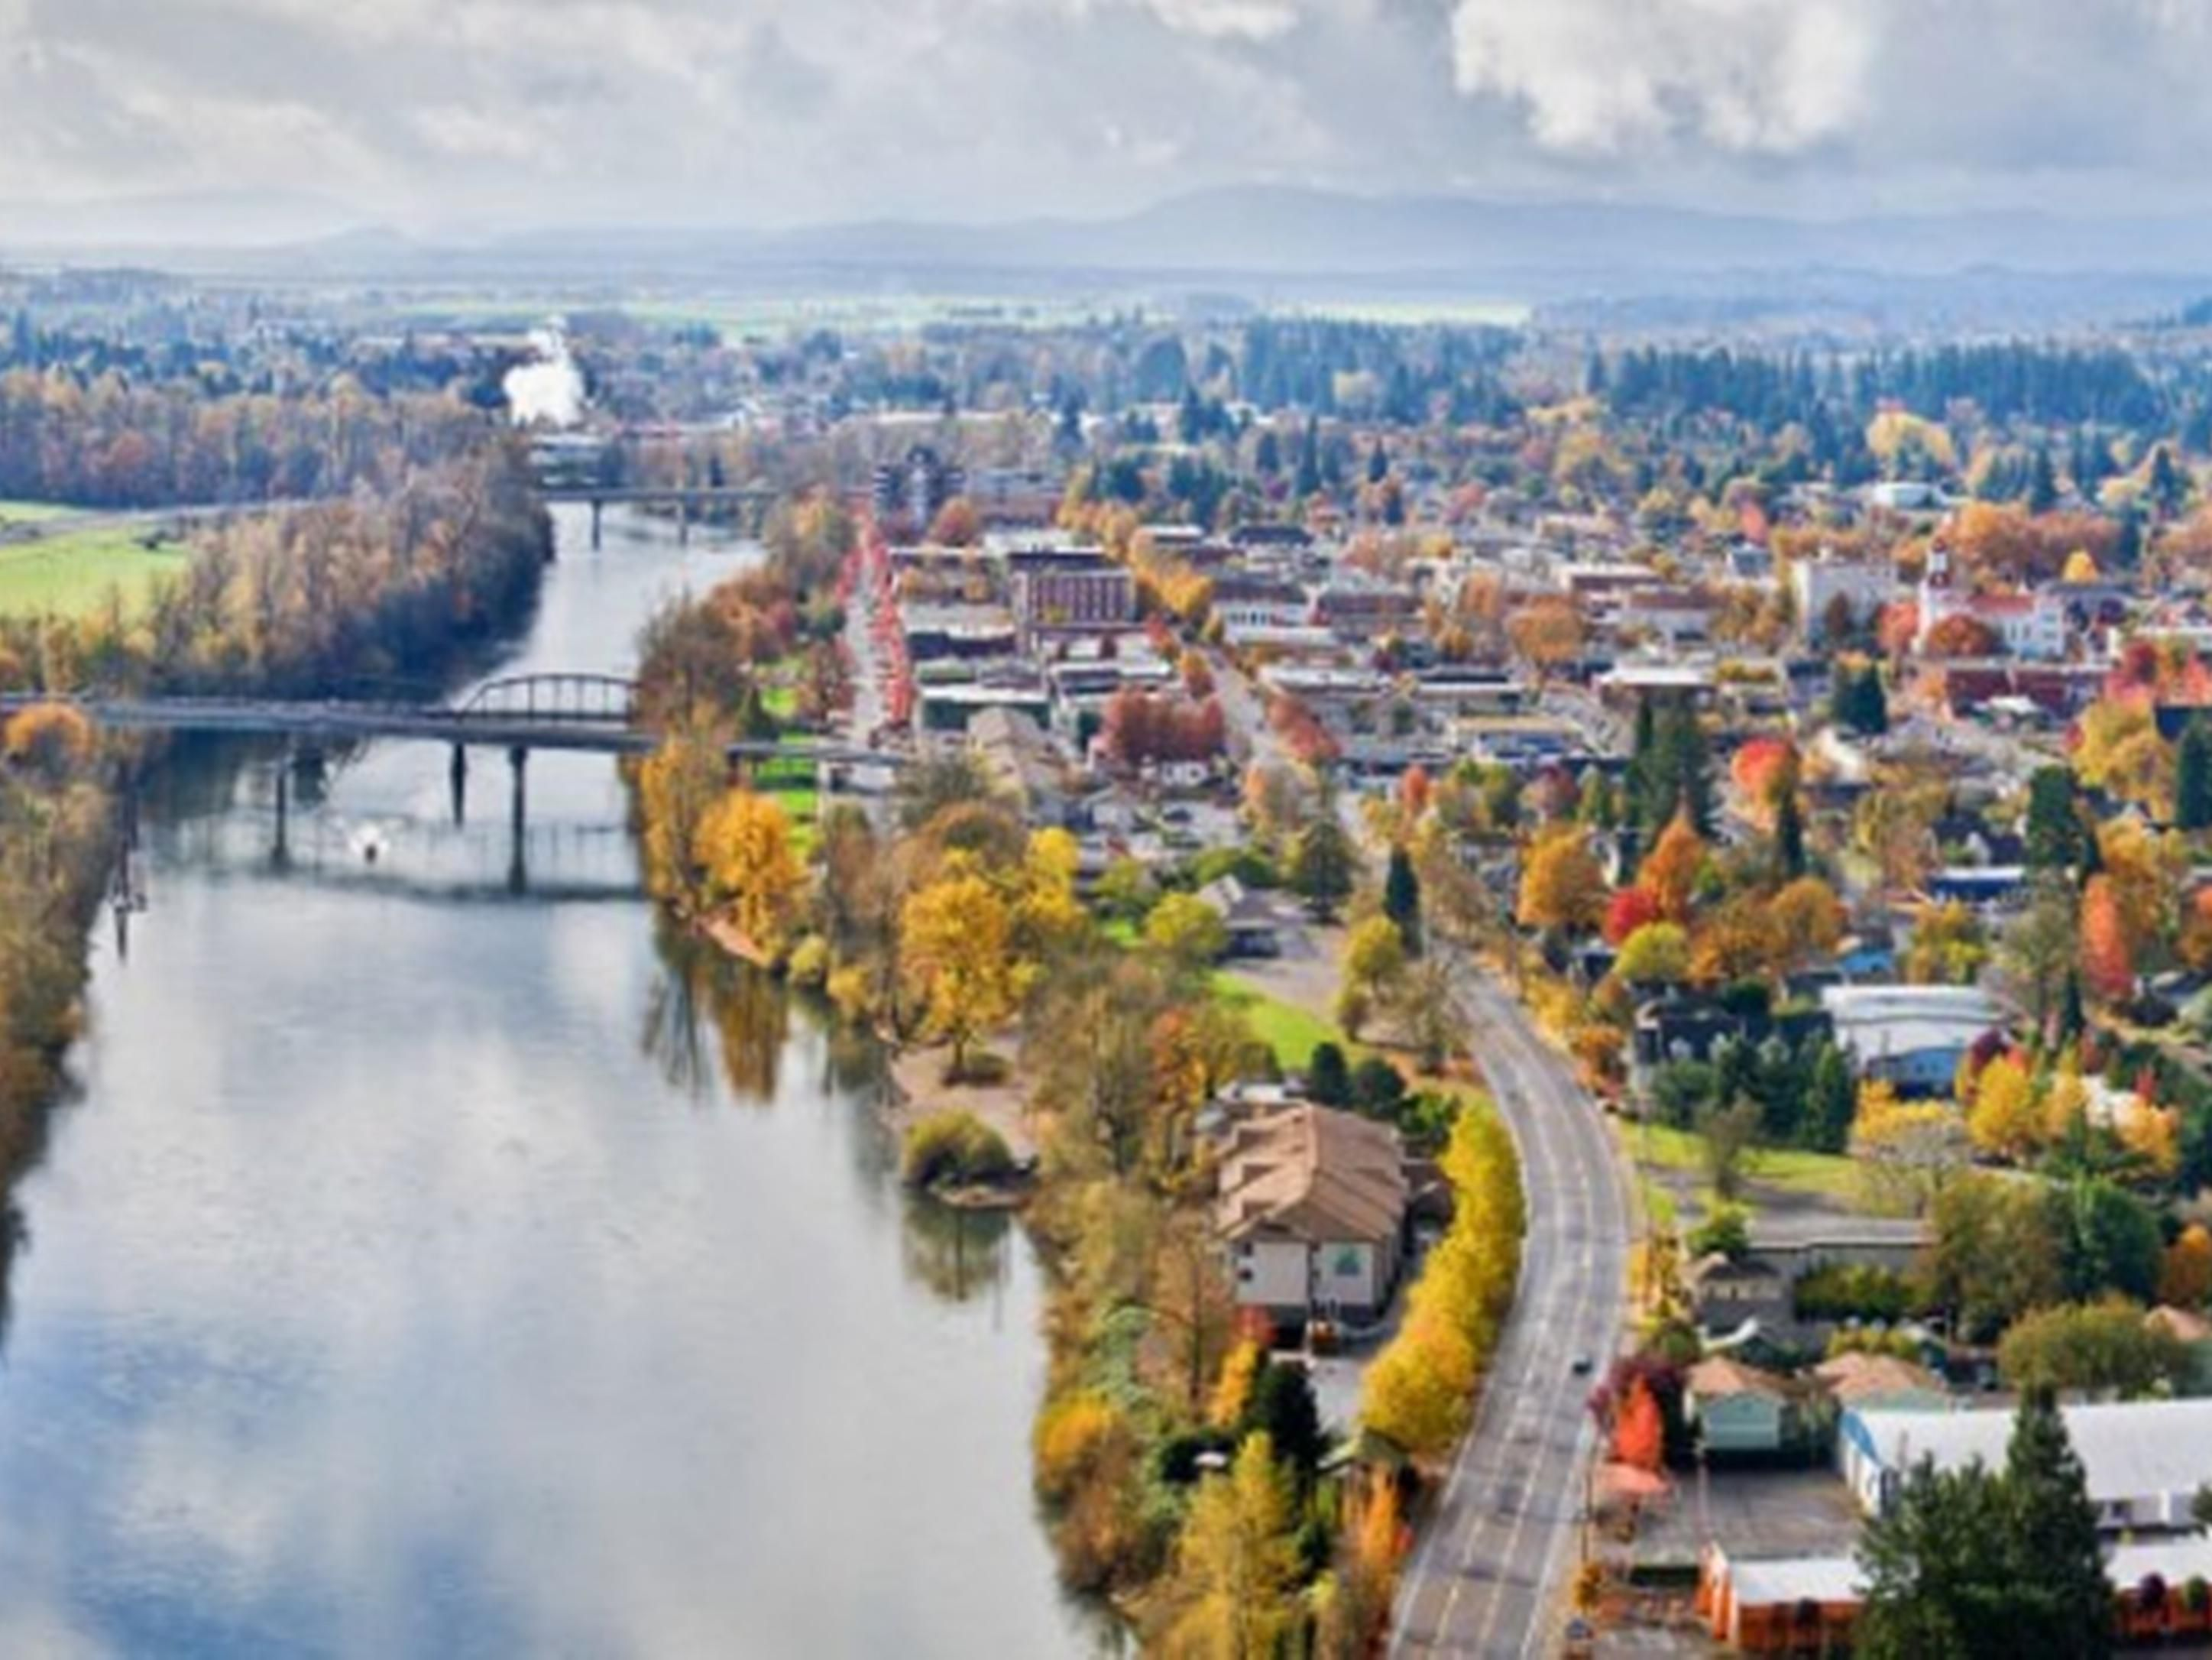 Albany is at the center of Oregon's beautiful Willamette Valley